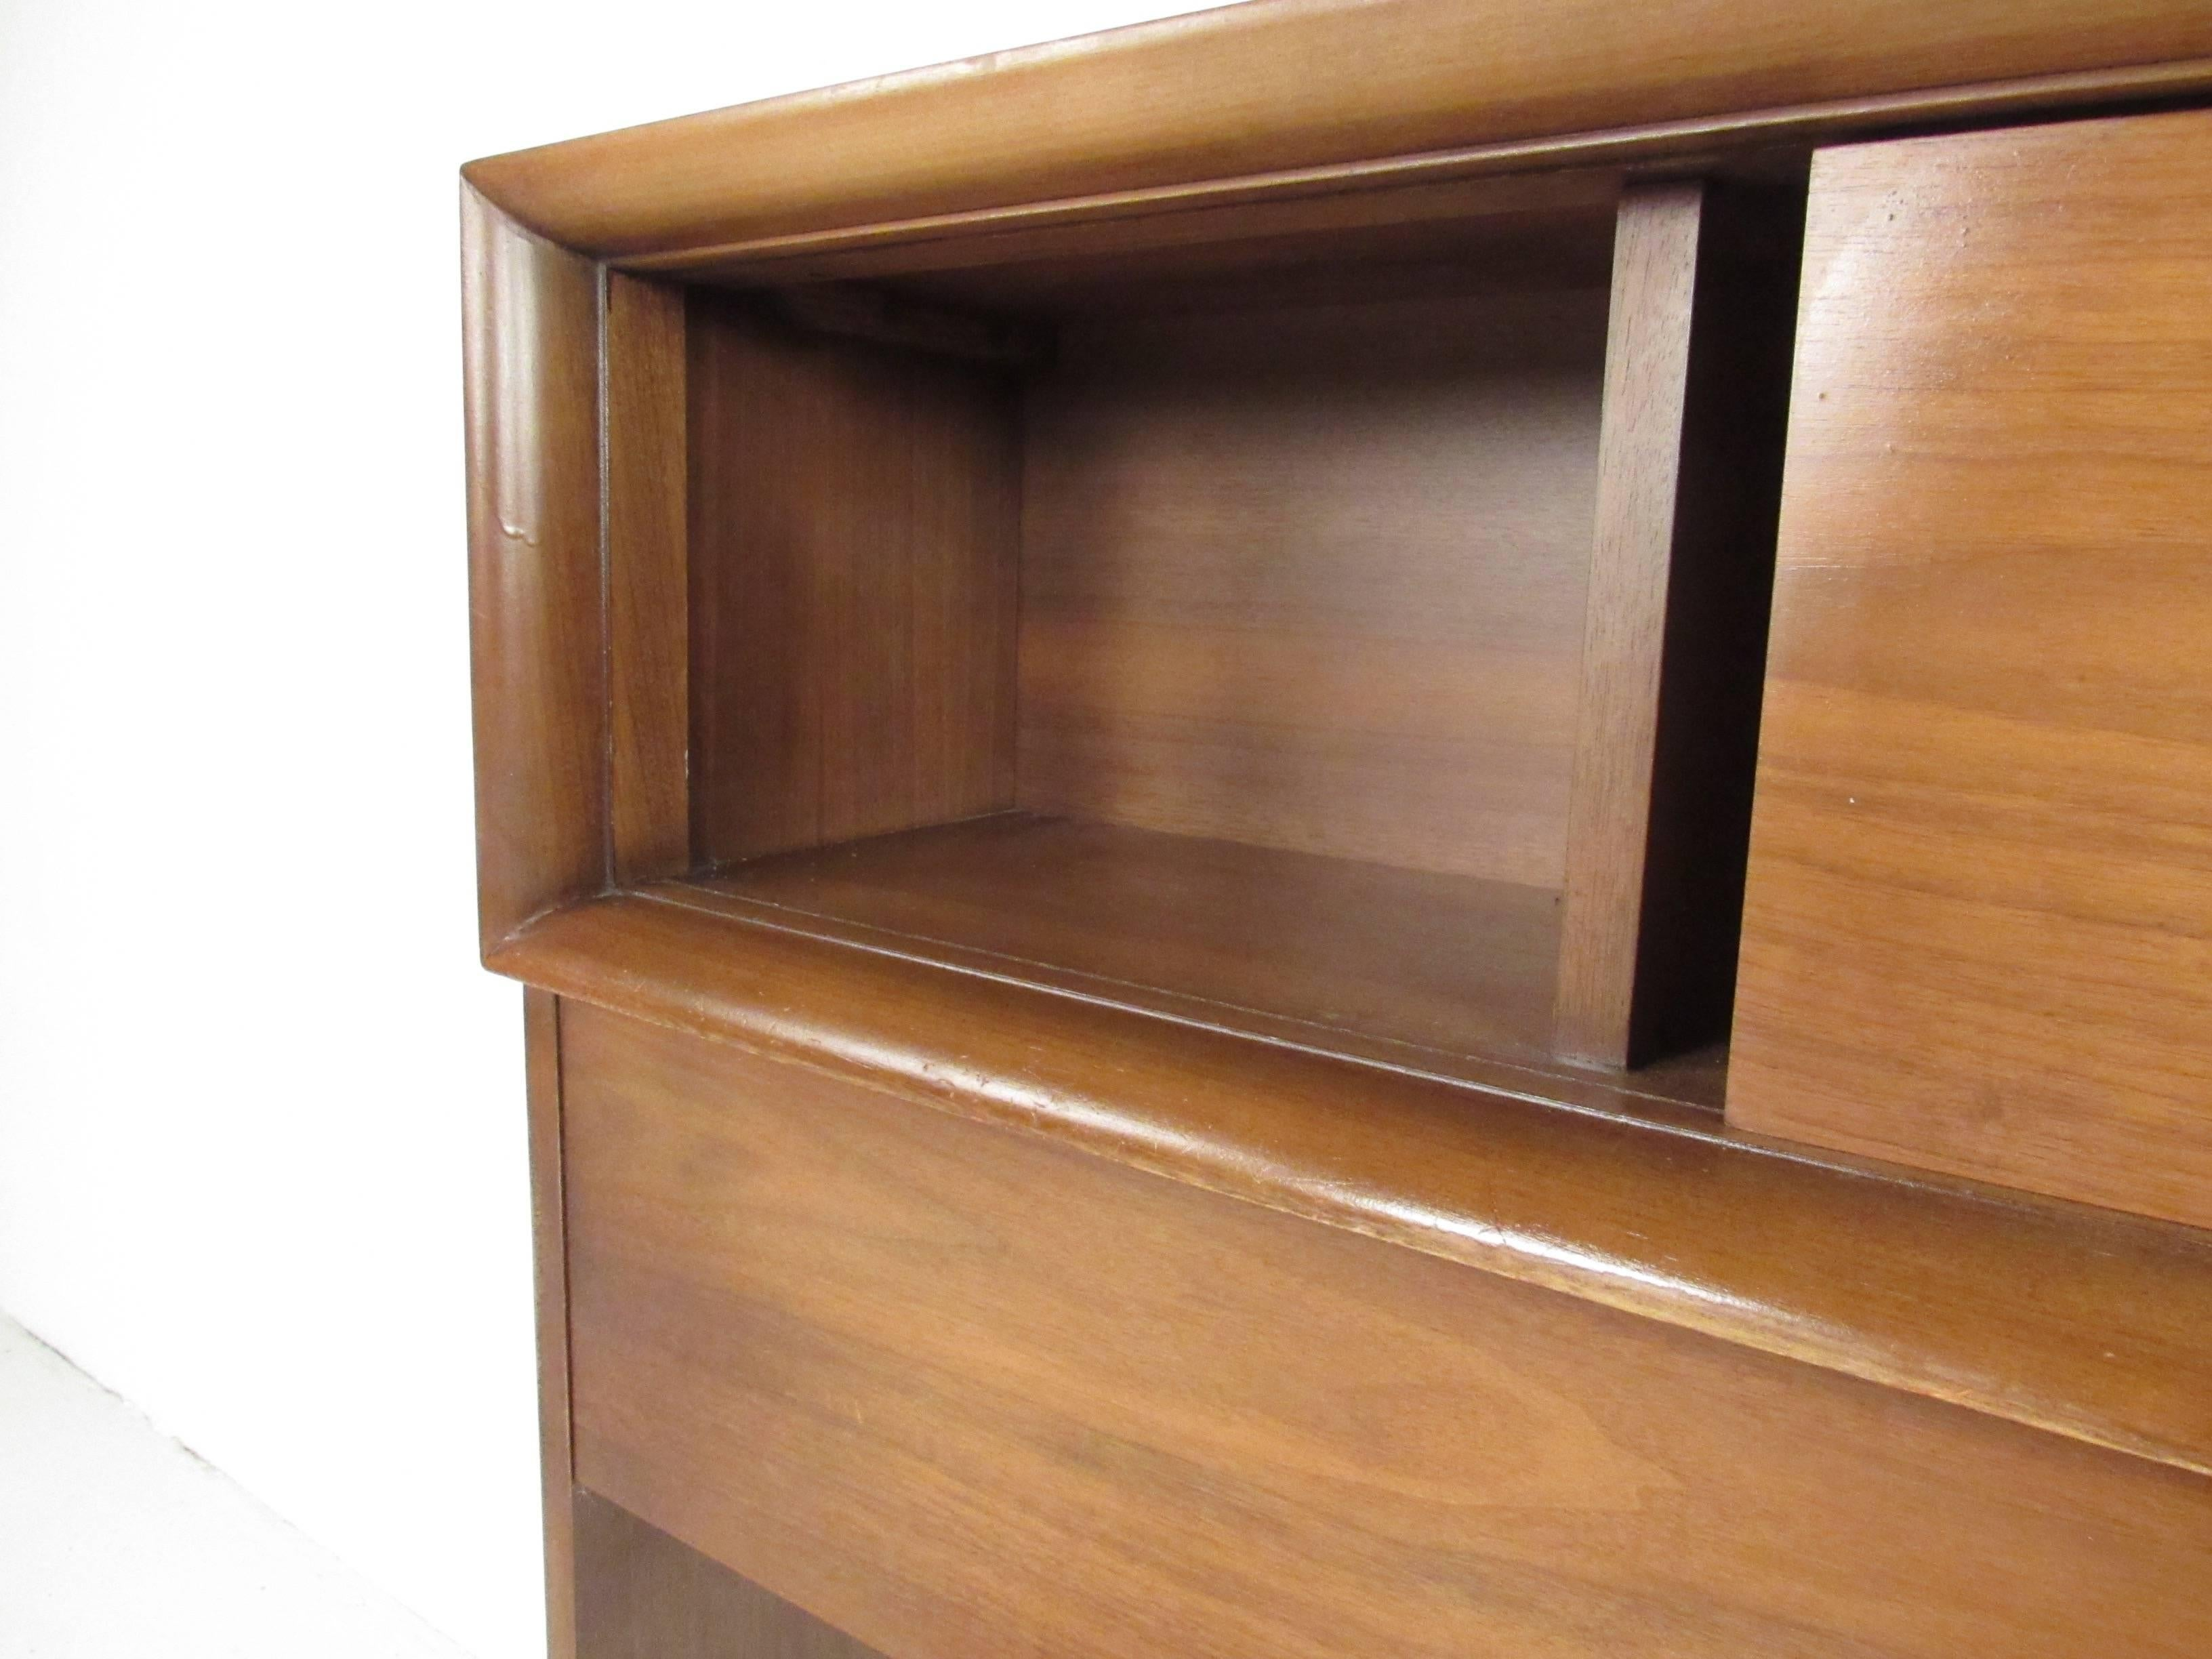 Charmant Mid Century Modern Midcentury Walnut Headboard With Storage Compartments  For Sale